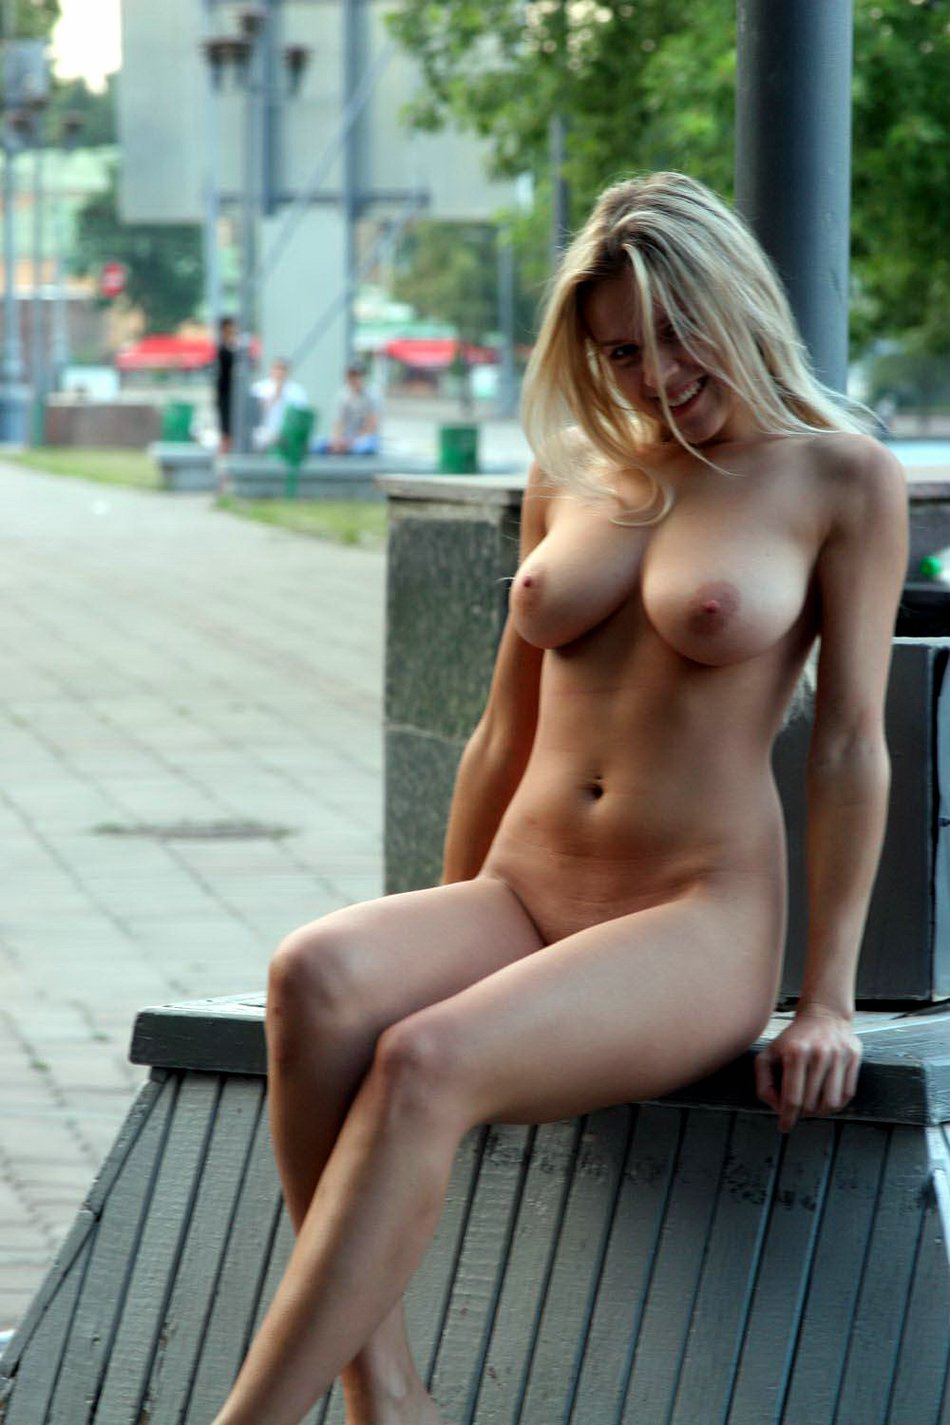 Super Hot Mom with Big Boobs Flashing Naked in Public Photo